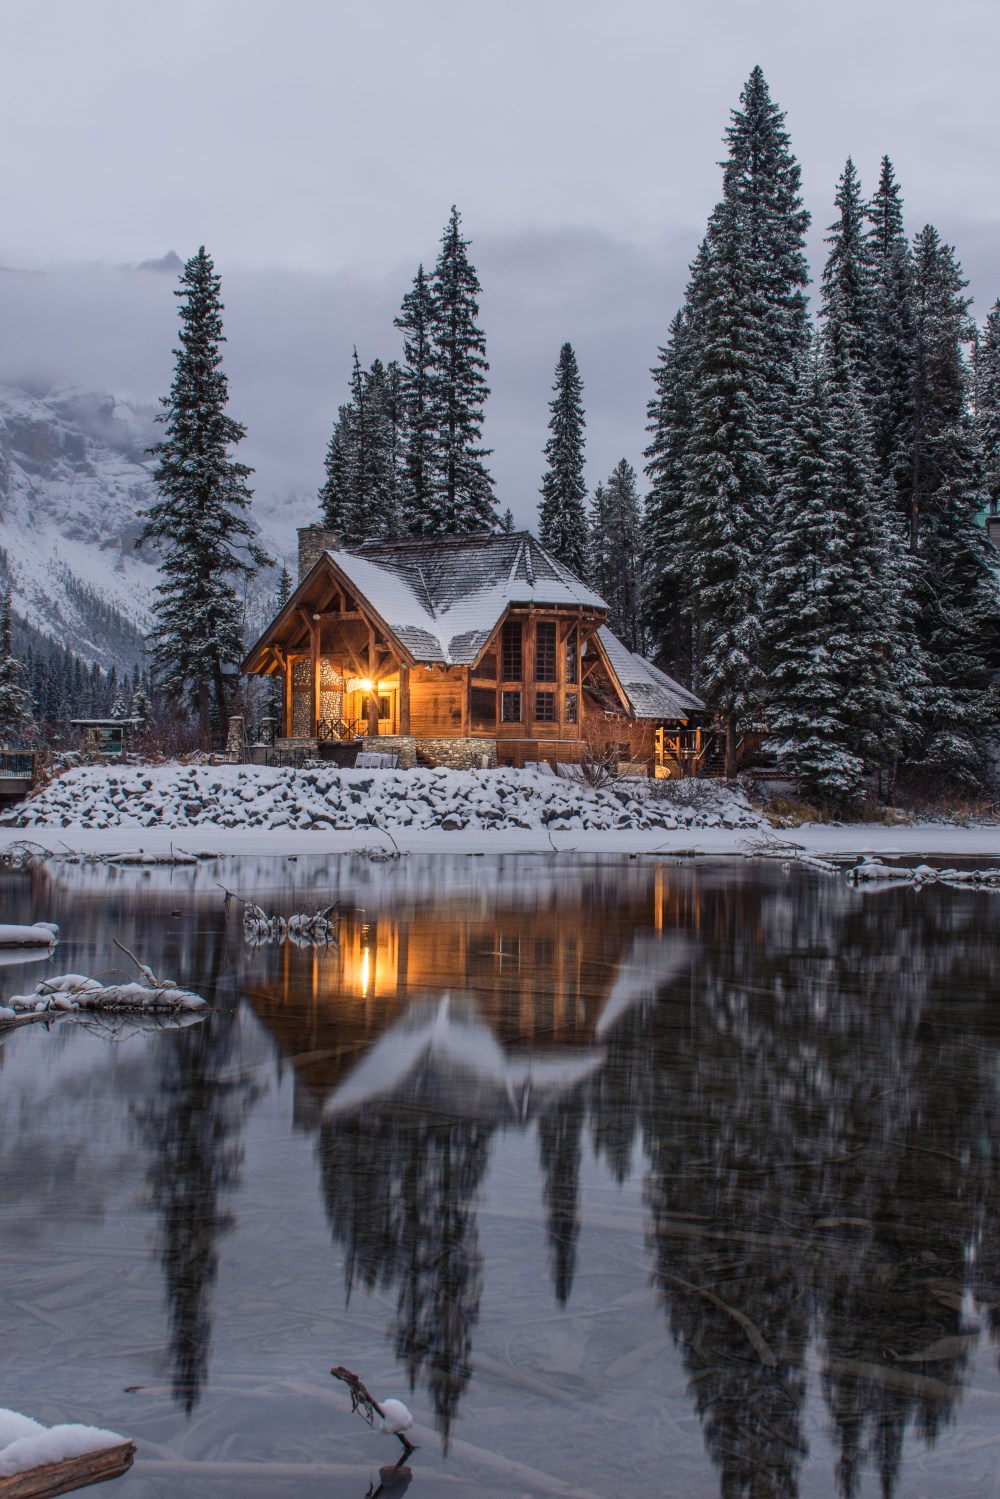 Falling Skies Wallpaper 1920x1080 Wooden House Near Pine Trees And Pond Coated With Snow